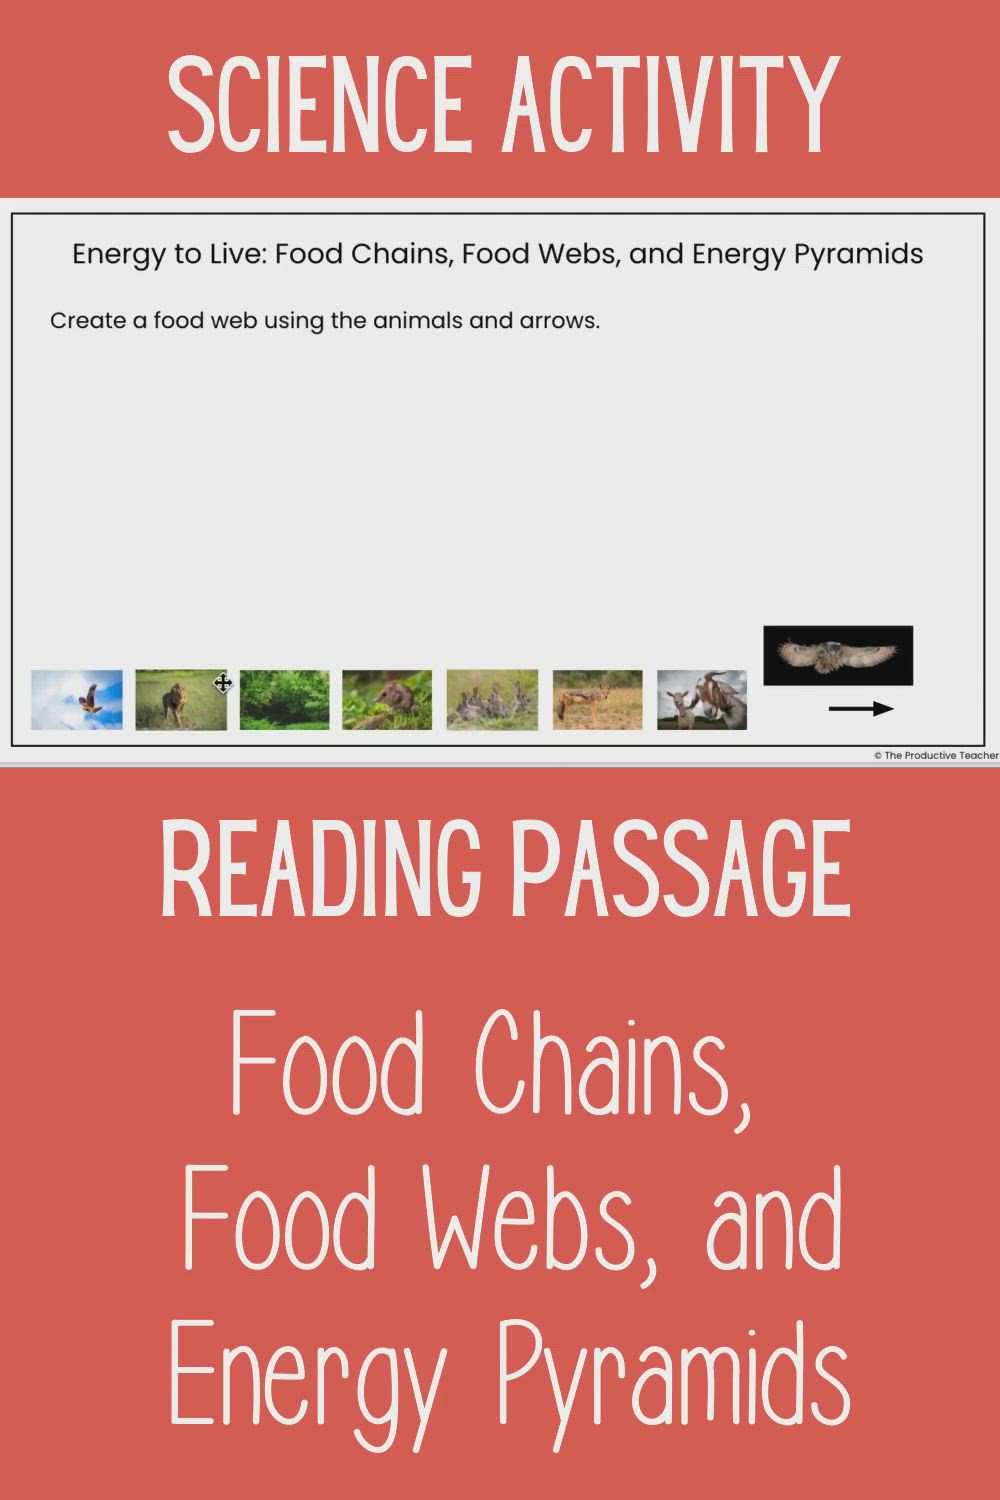 Food Chains And Food Webs Middle School Science Reading Passage Video Video Reading Passages Science Reading Passages Science Reading [ 1500 x 1000 Pixel ]